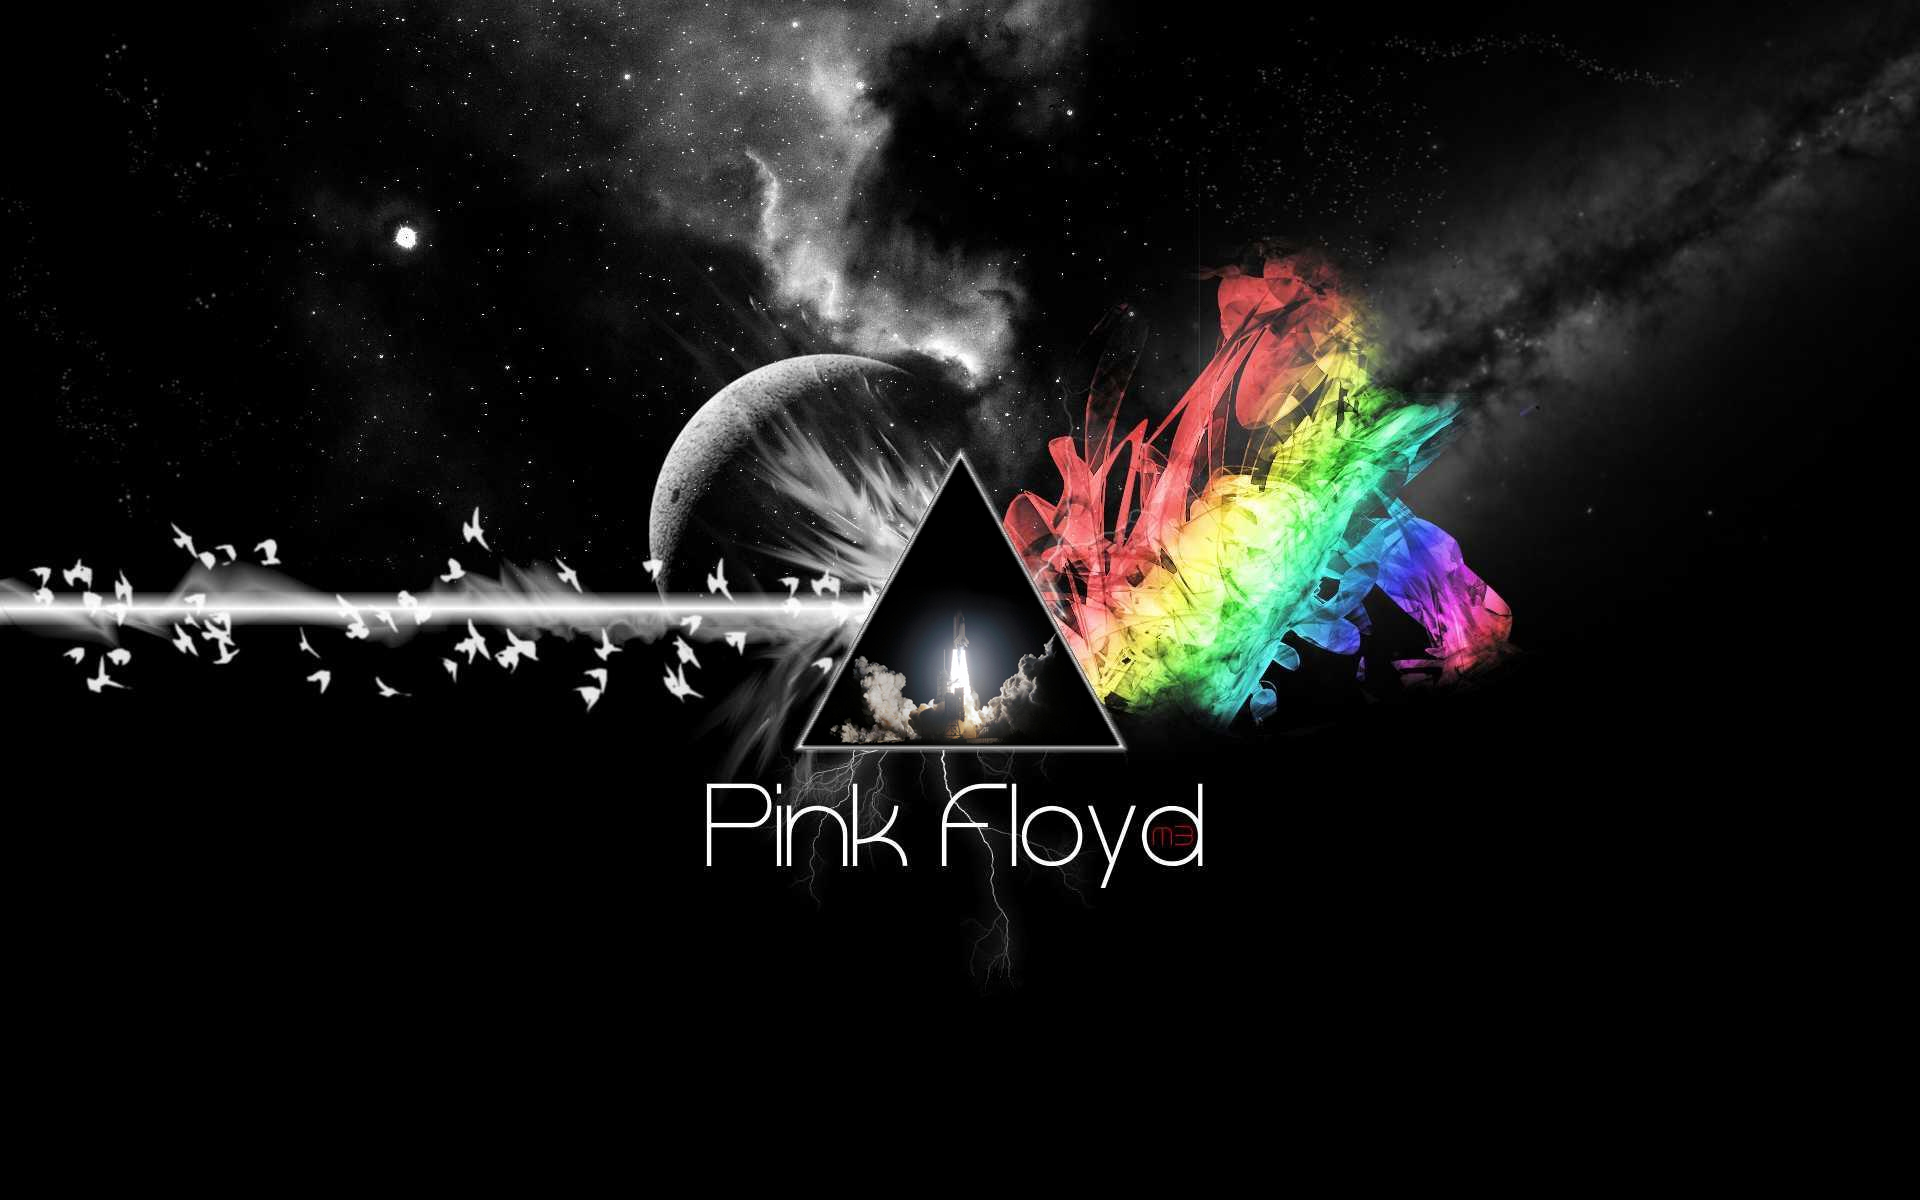 PINK FLOYD | SURFING IN THE WORLD